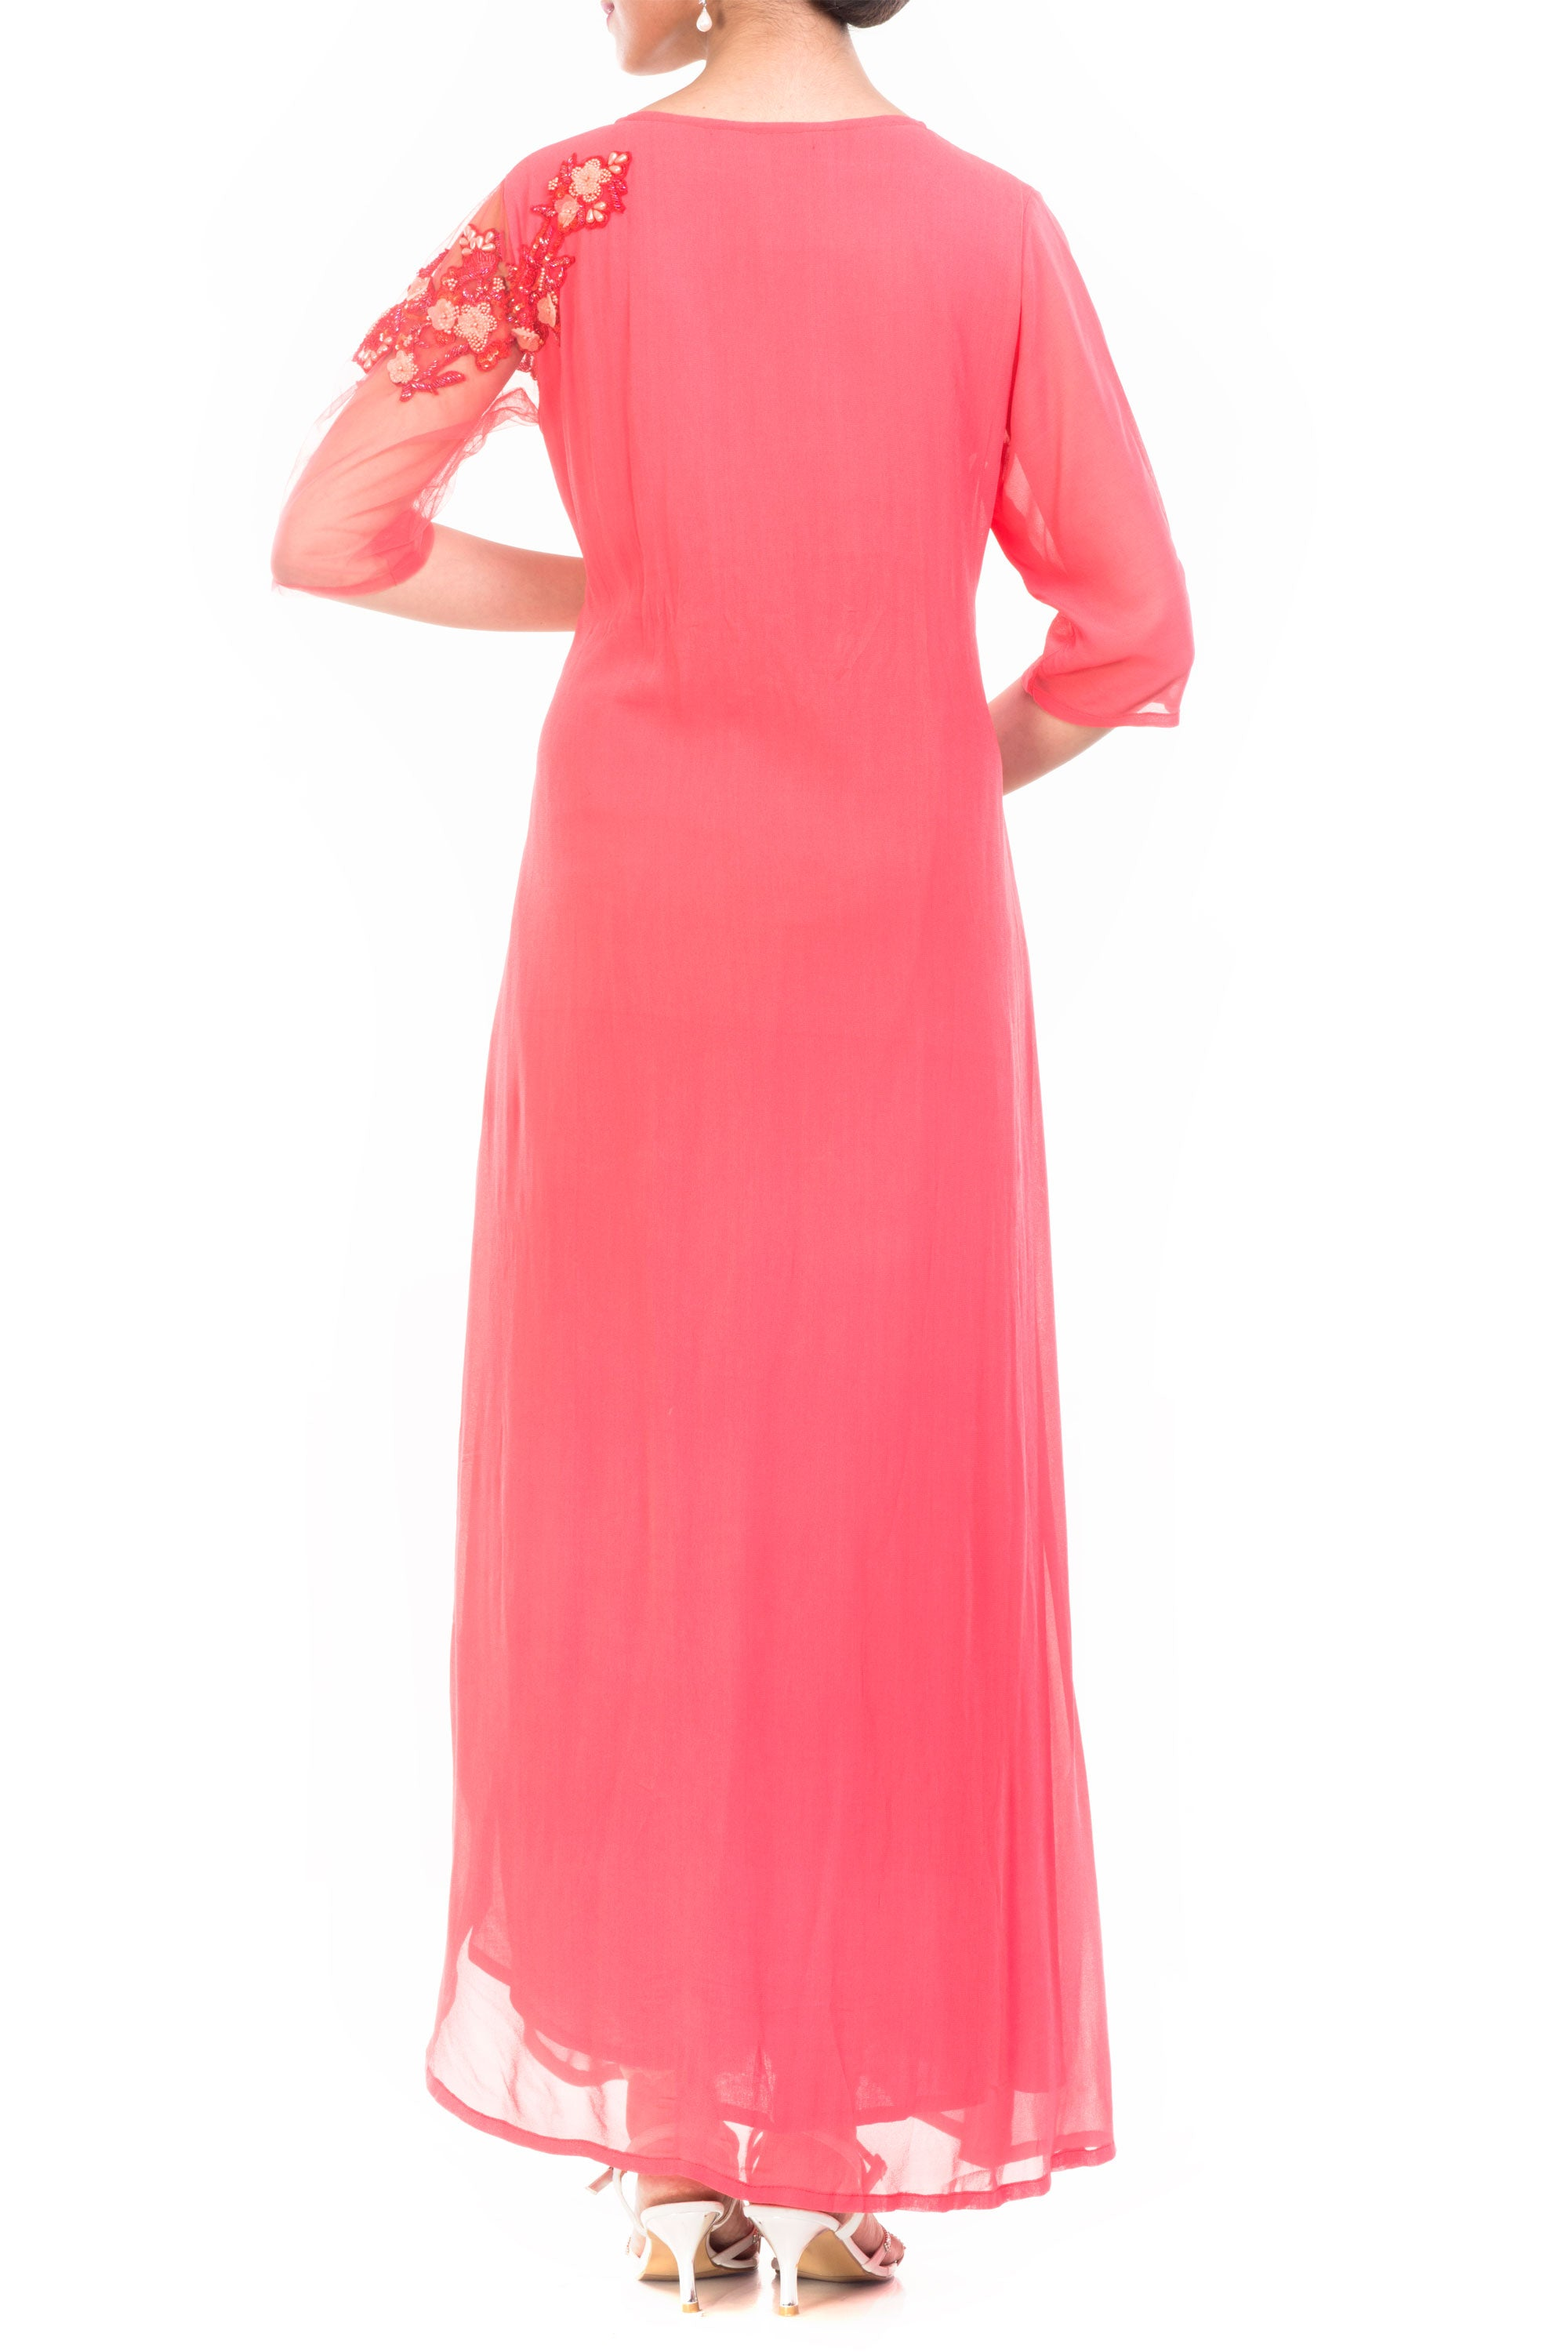 Strawberry Ice Long Length Tunic Back